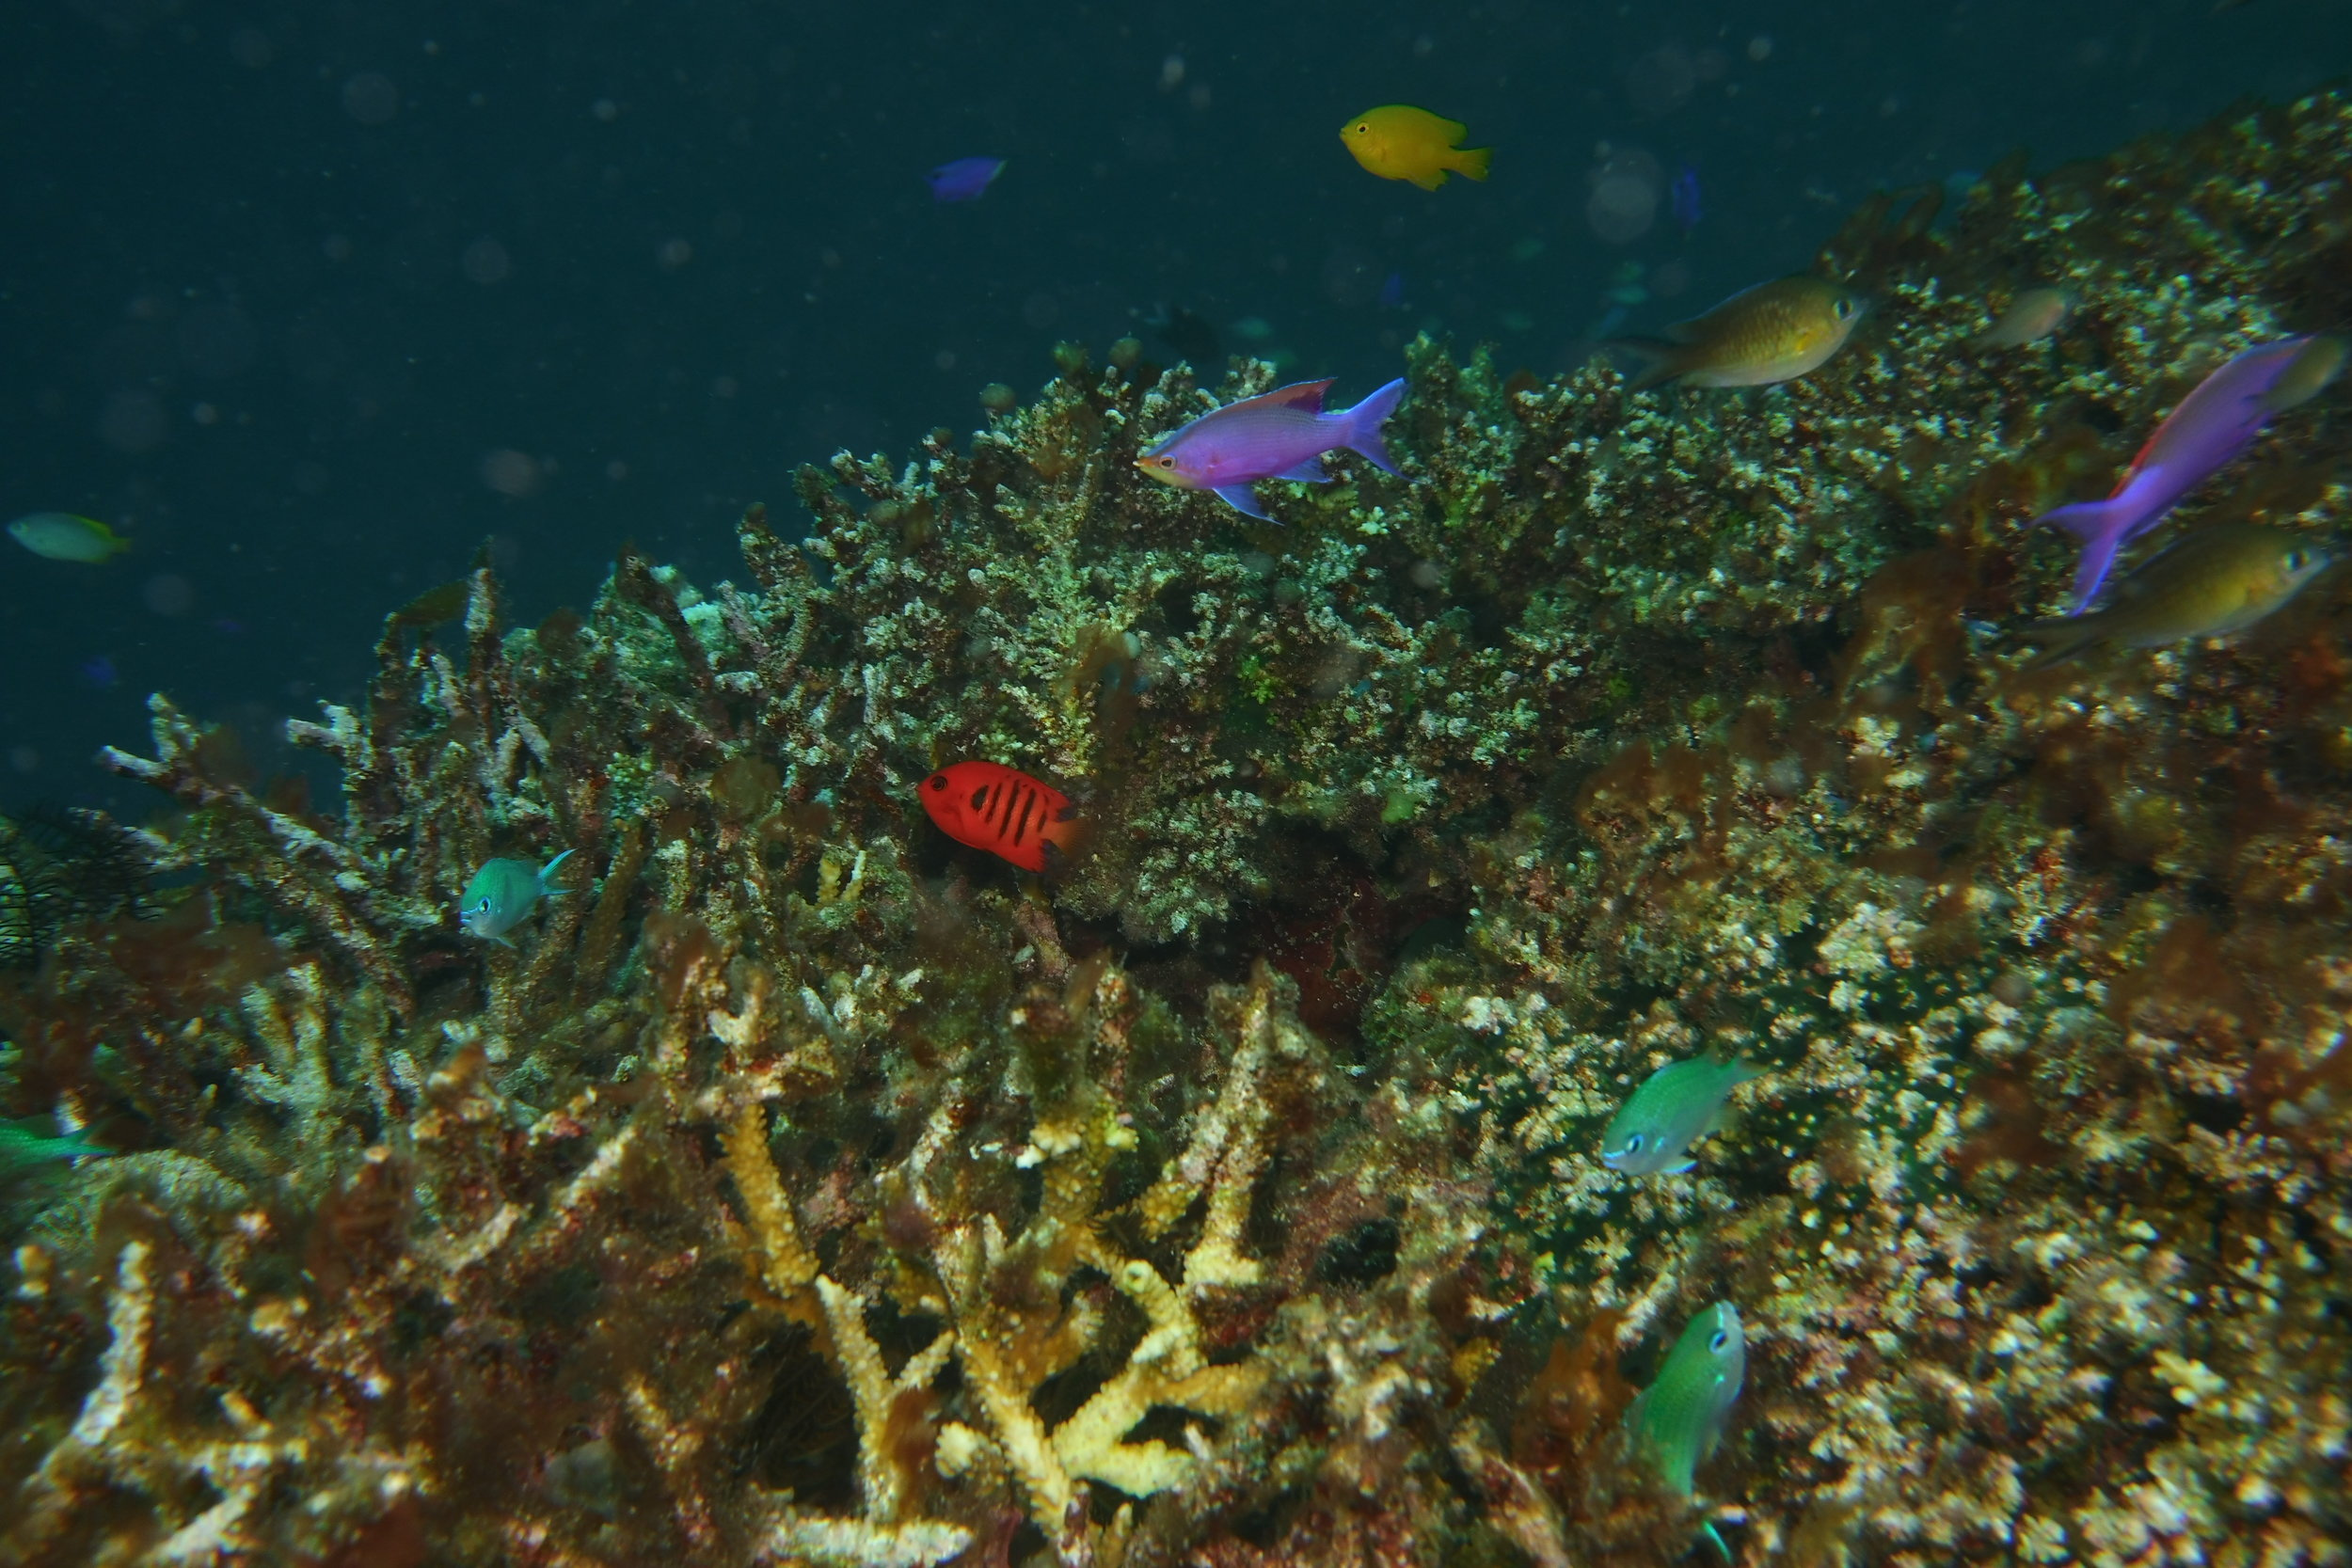 The red fish in the center is a Flame Angelfish; is rare; and was found on only one dive site.